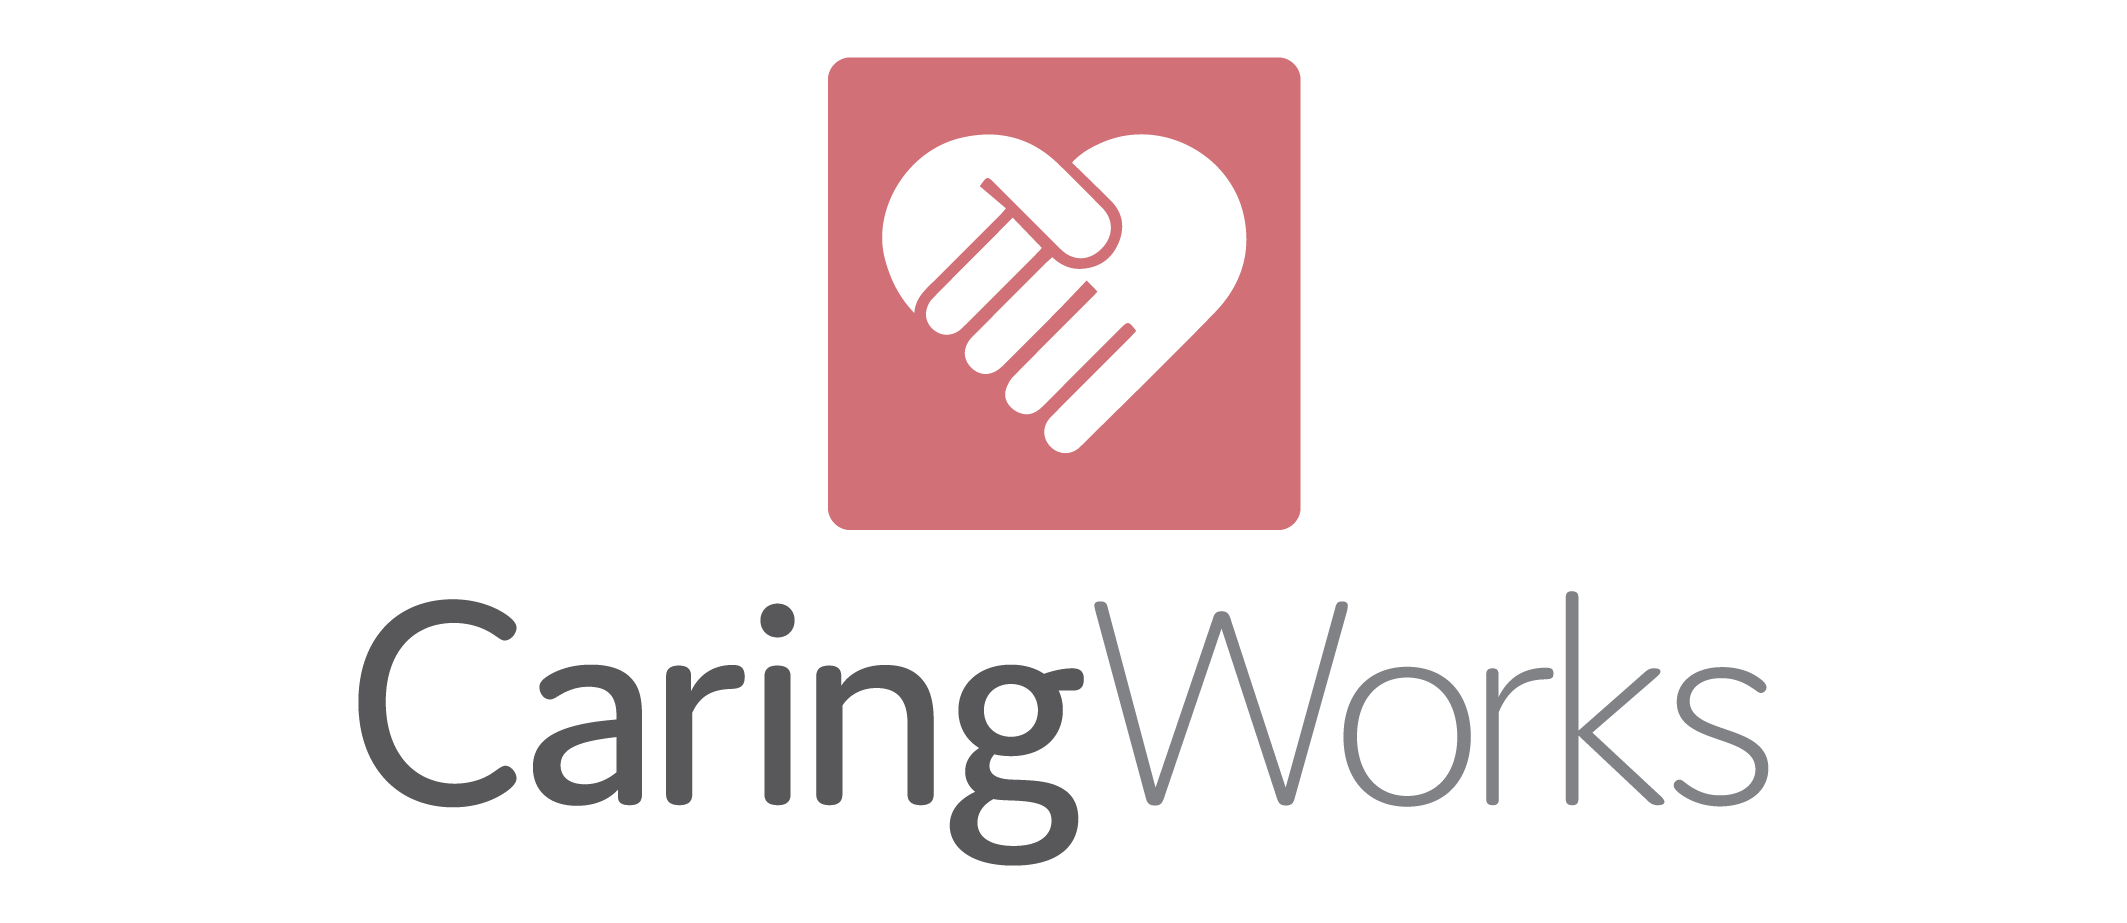 Caring Works